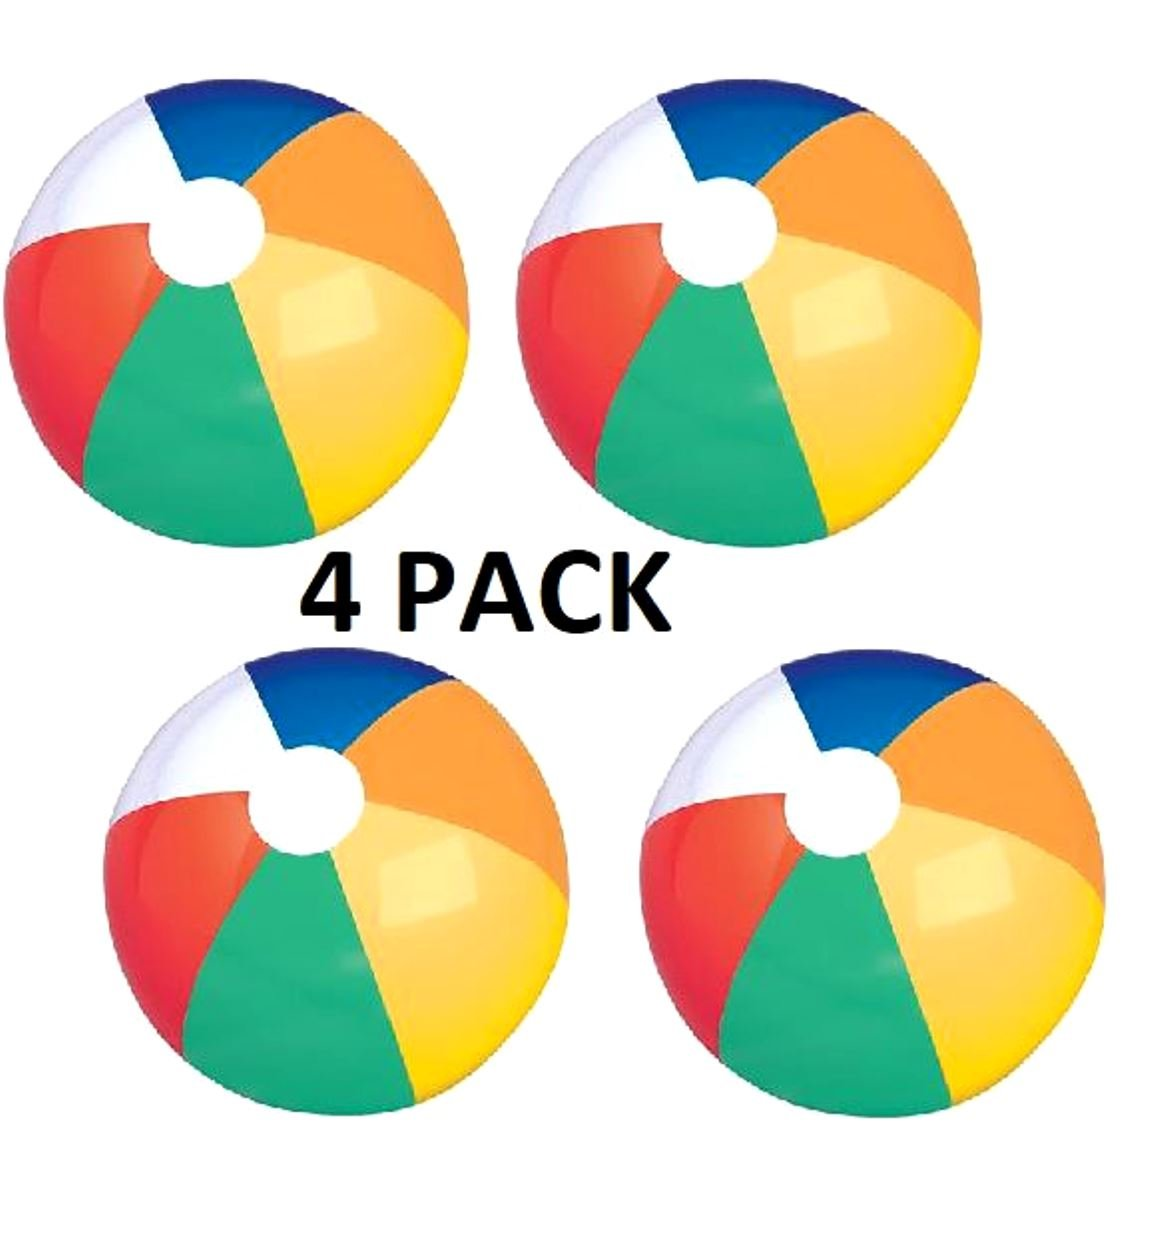 24'' Inflatable Beach Ball 4PACK-Ideal for Poolside,Lakes,Beach,BBQ,Camping,Park,Party-Can Be Inflated Via Mouth,Hand Pump, Pressure Pump, etc.Can Be Deflated After Use For Easy/Convenient Storage